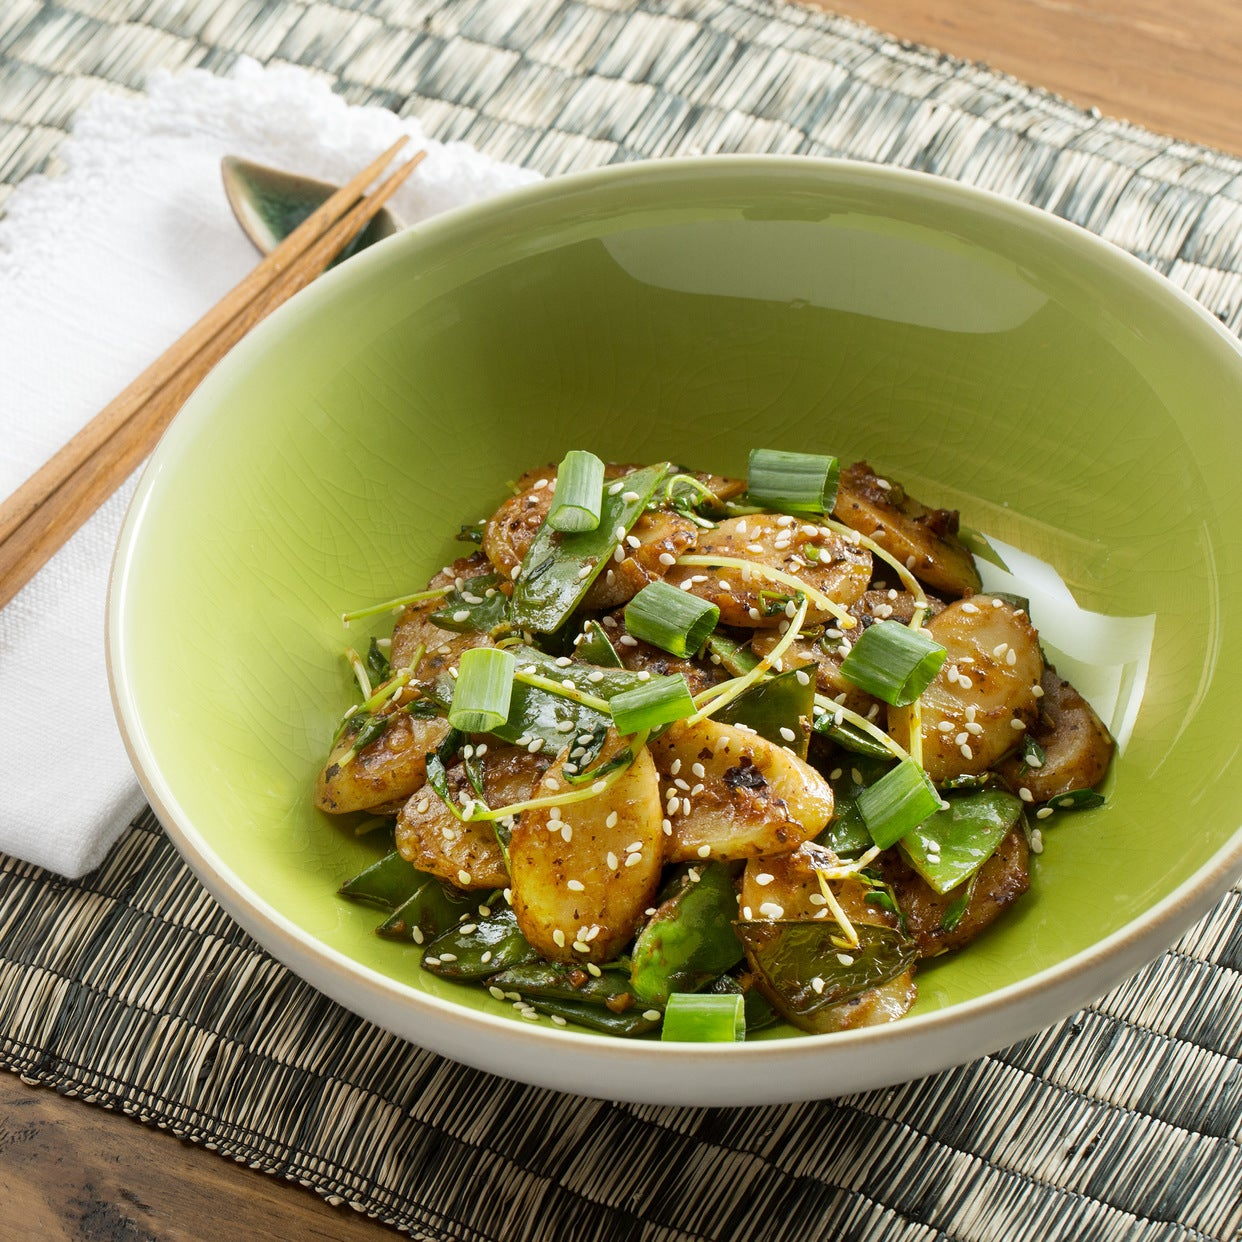 Spicy Korean Rice Cakes with Snow Peas & Pea Shoots